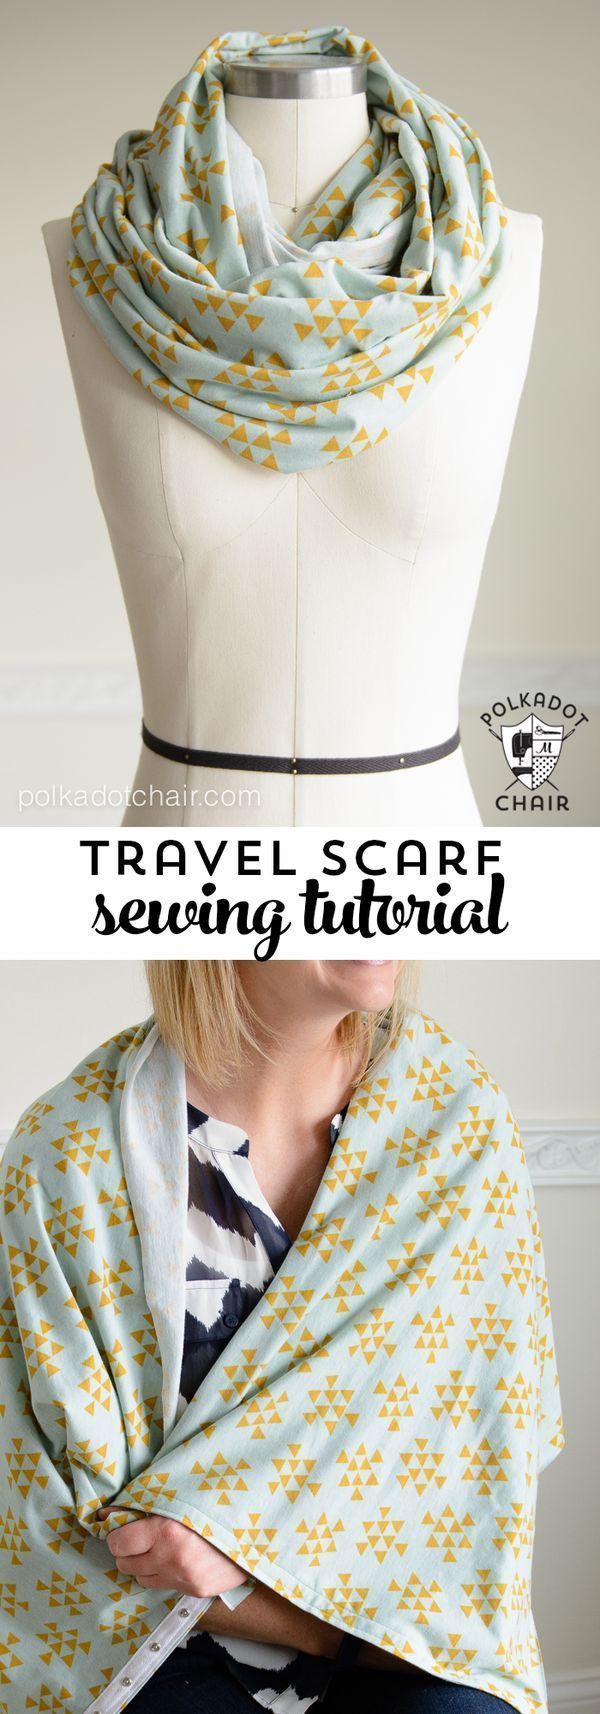 DIY Snap Up Infinity Scarf sewing pattern by Melissa of polkadotchair.com - perf...